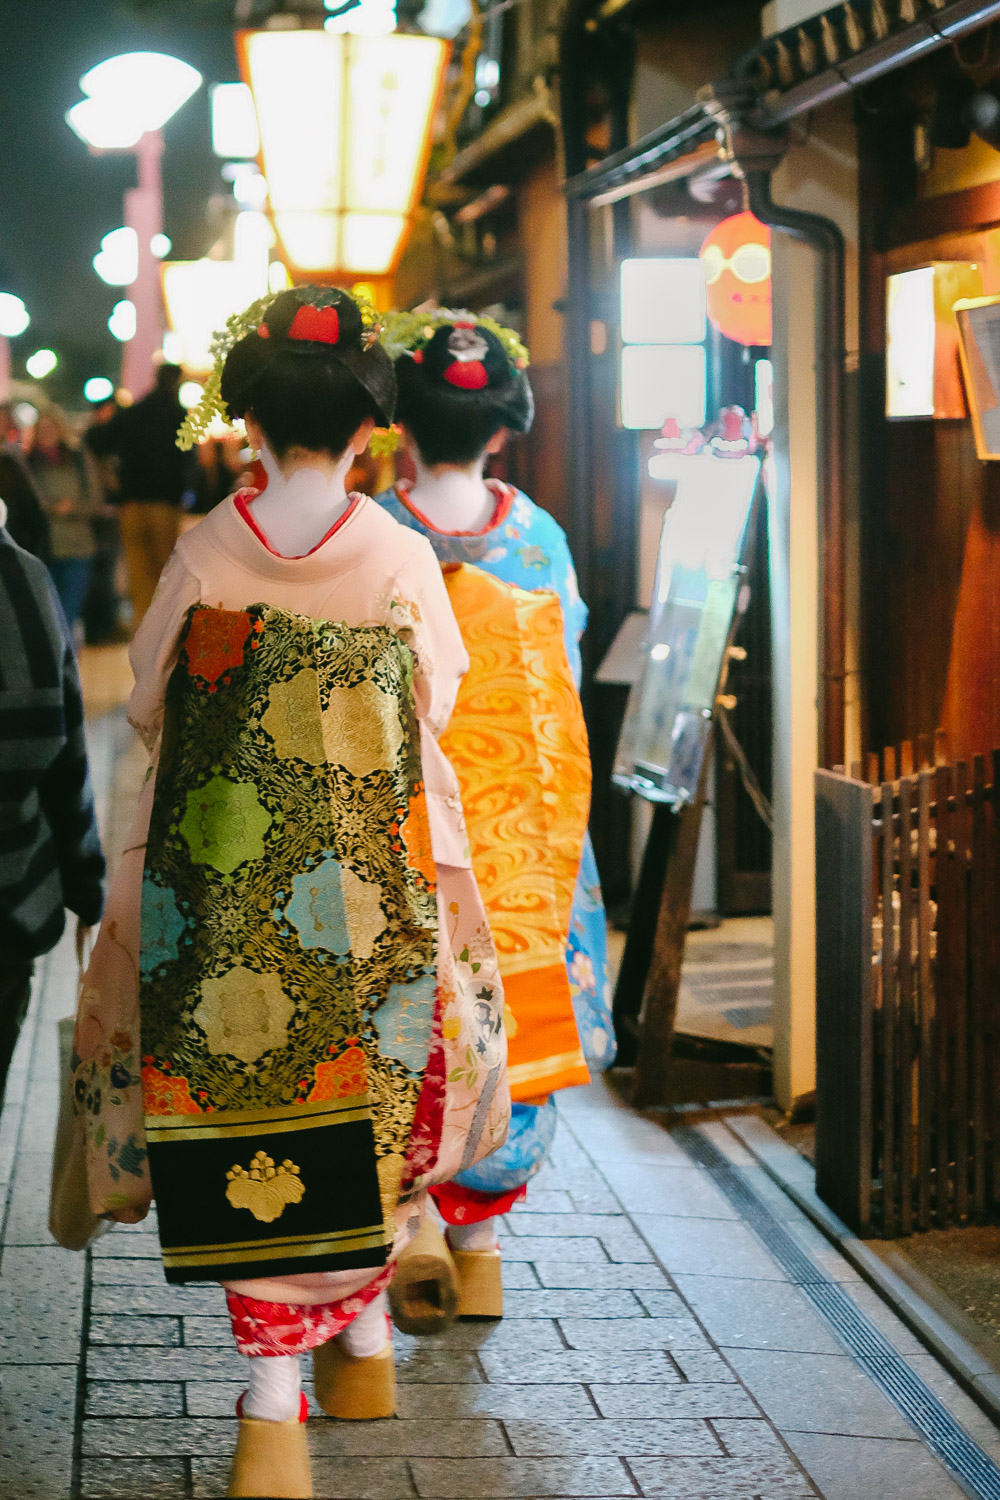 Maiko in Gion district of Kyoto